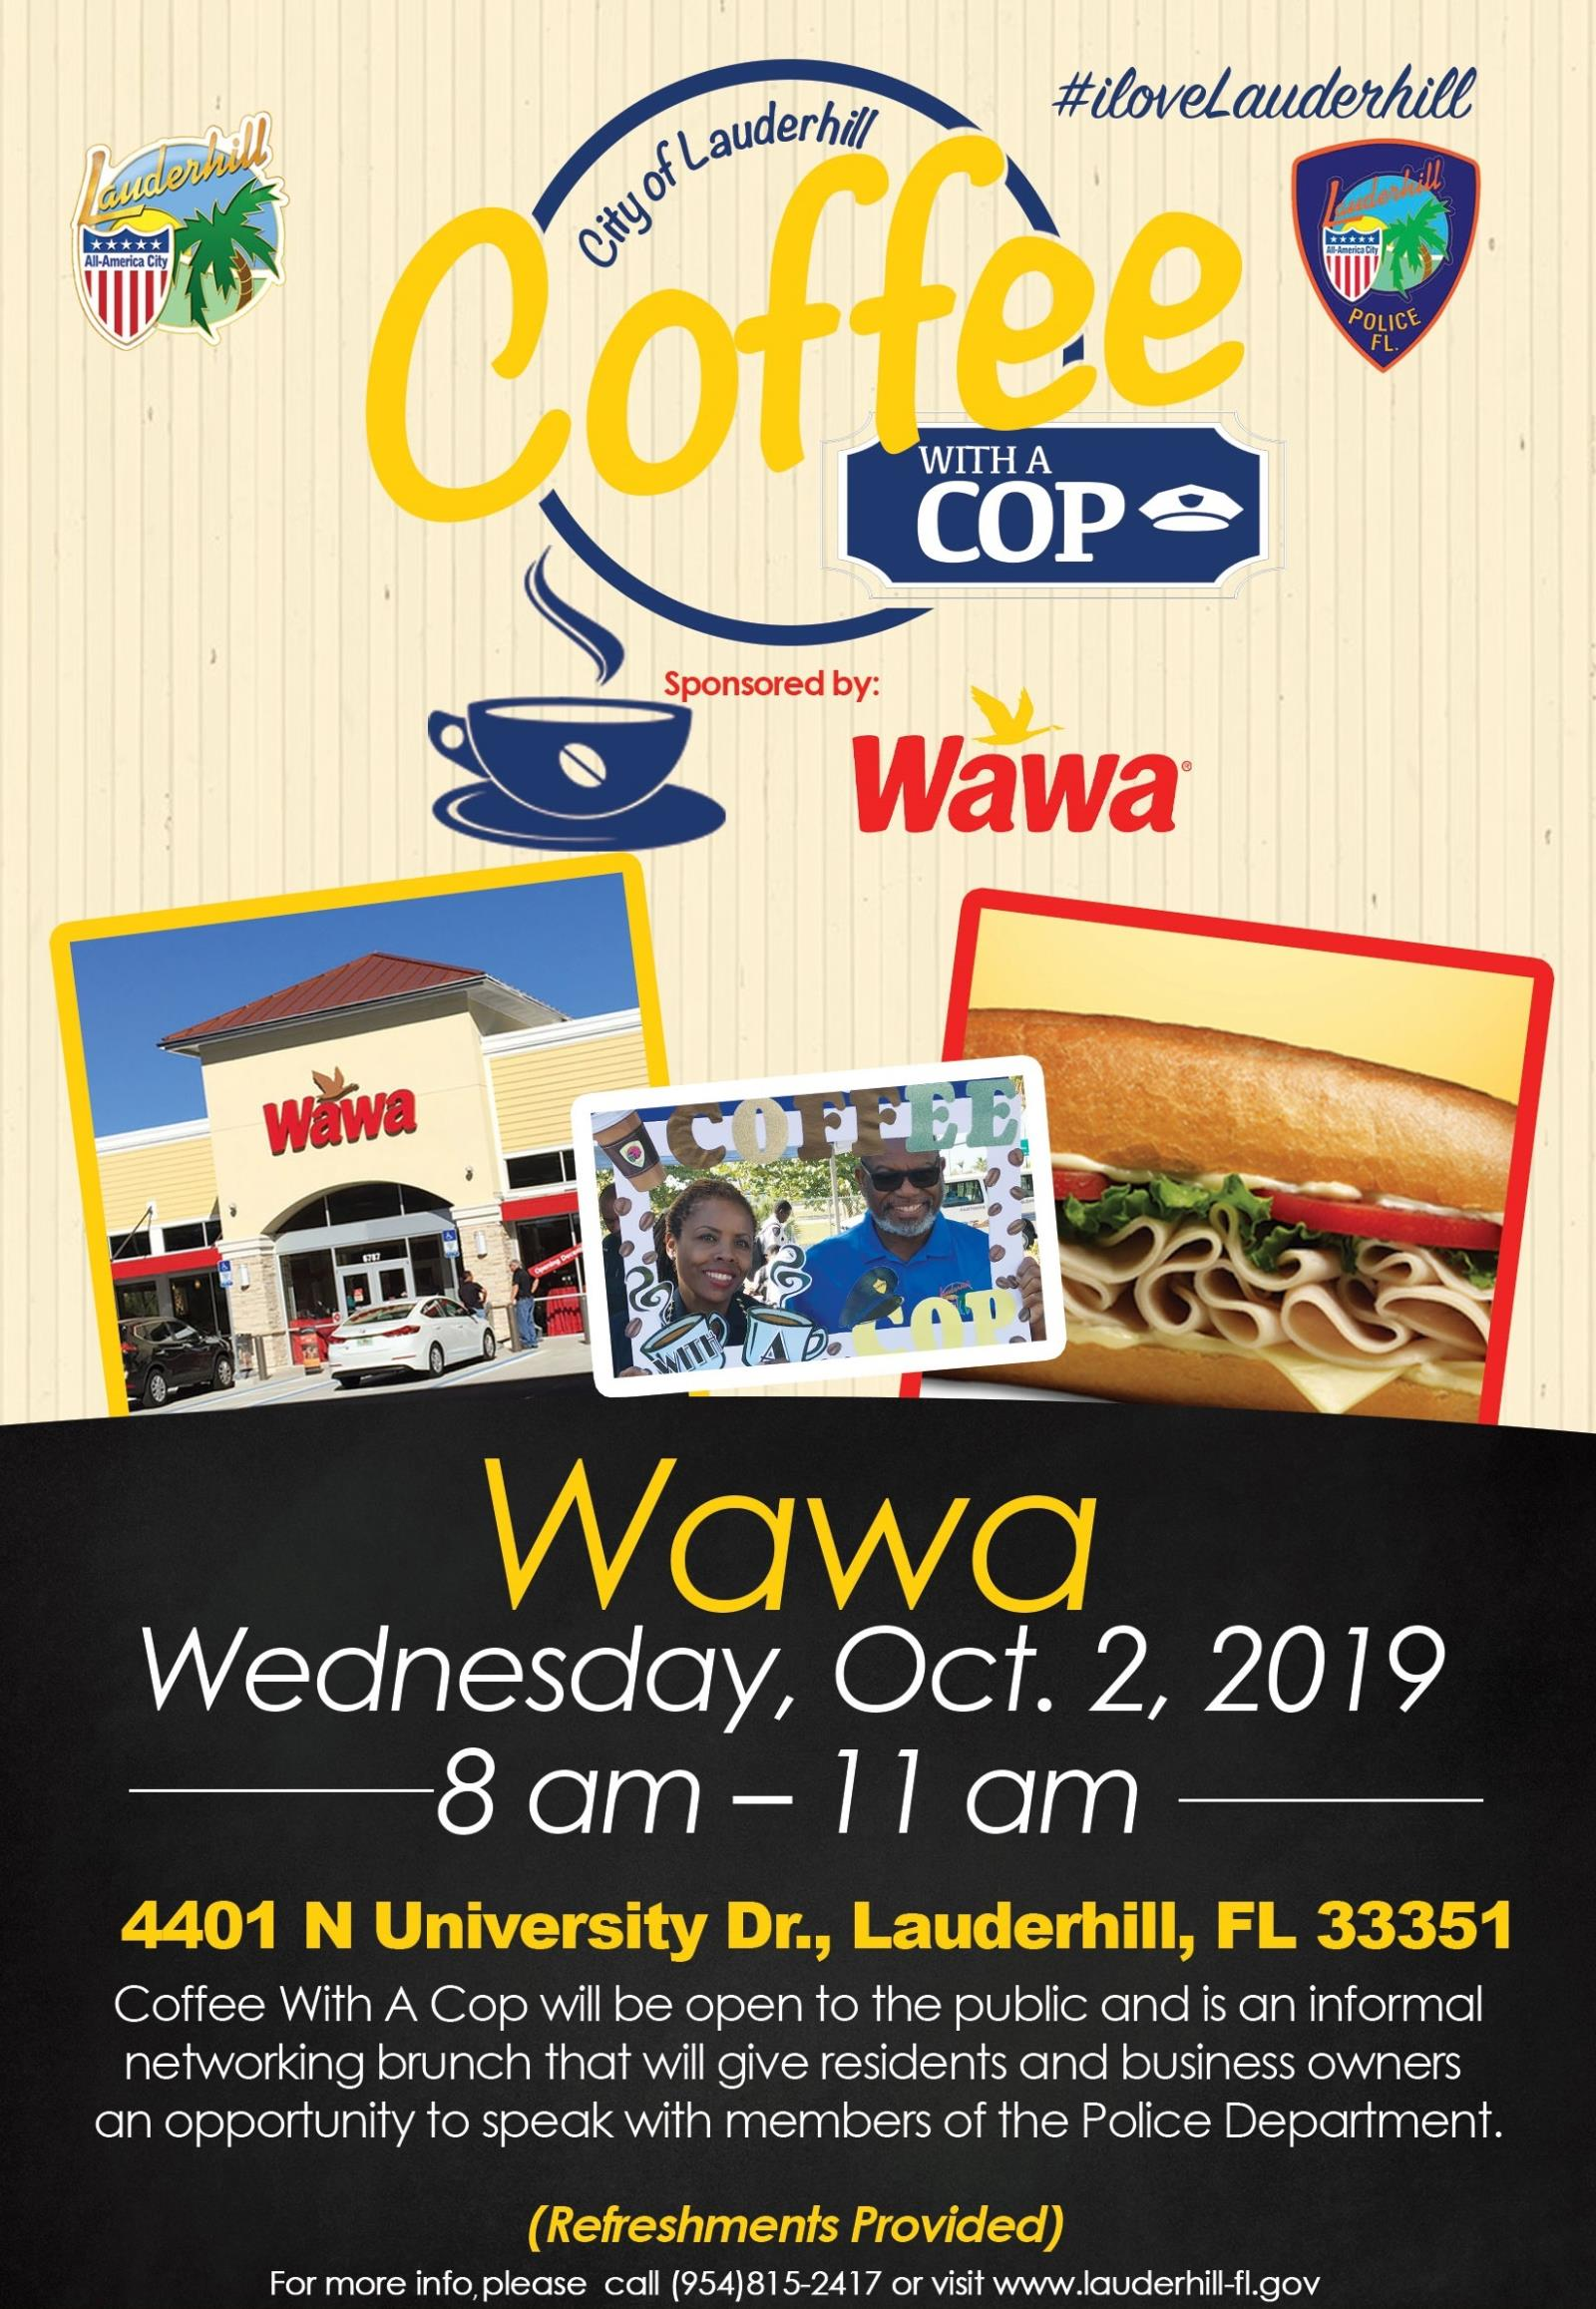 10-2-19 - Coffee With A Cop Event Flyer